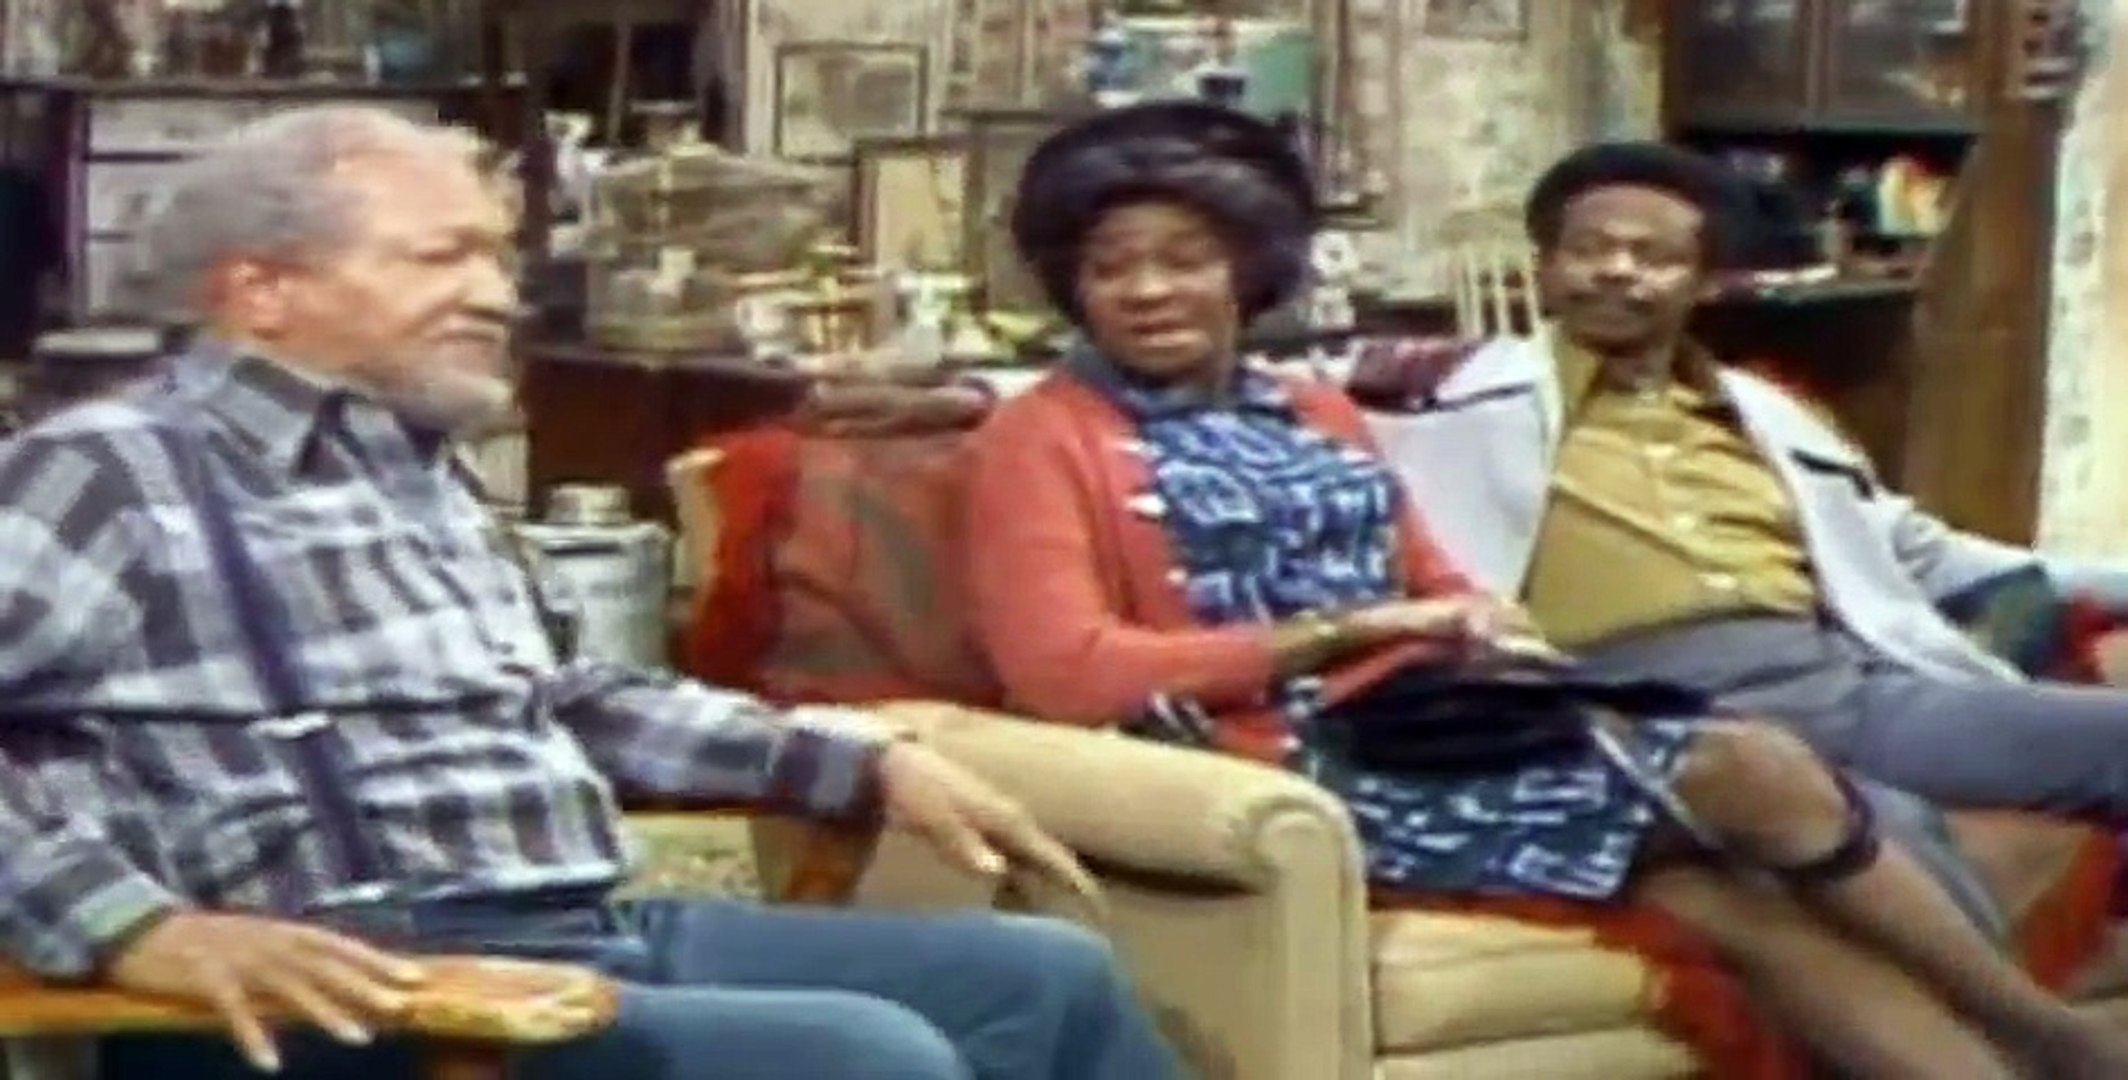 Sanford and Son S05 - Ep10 Sanford and Rising Son HD Watch